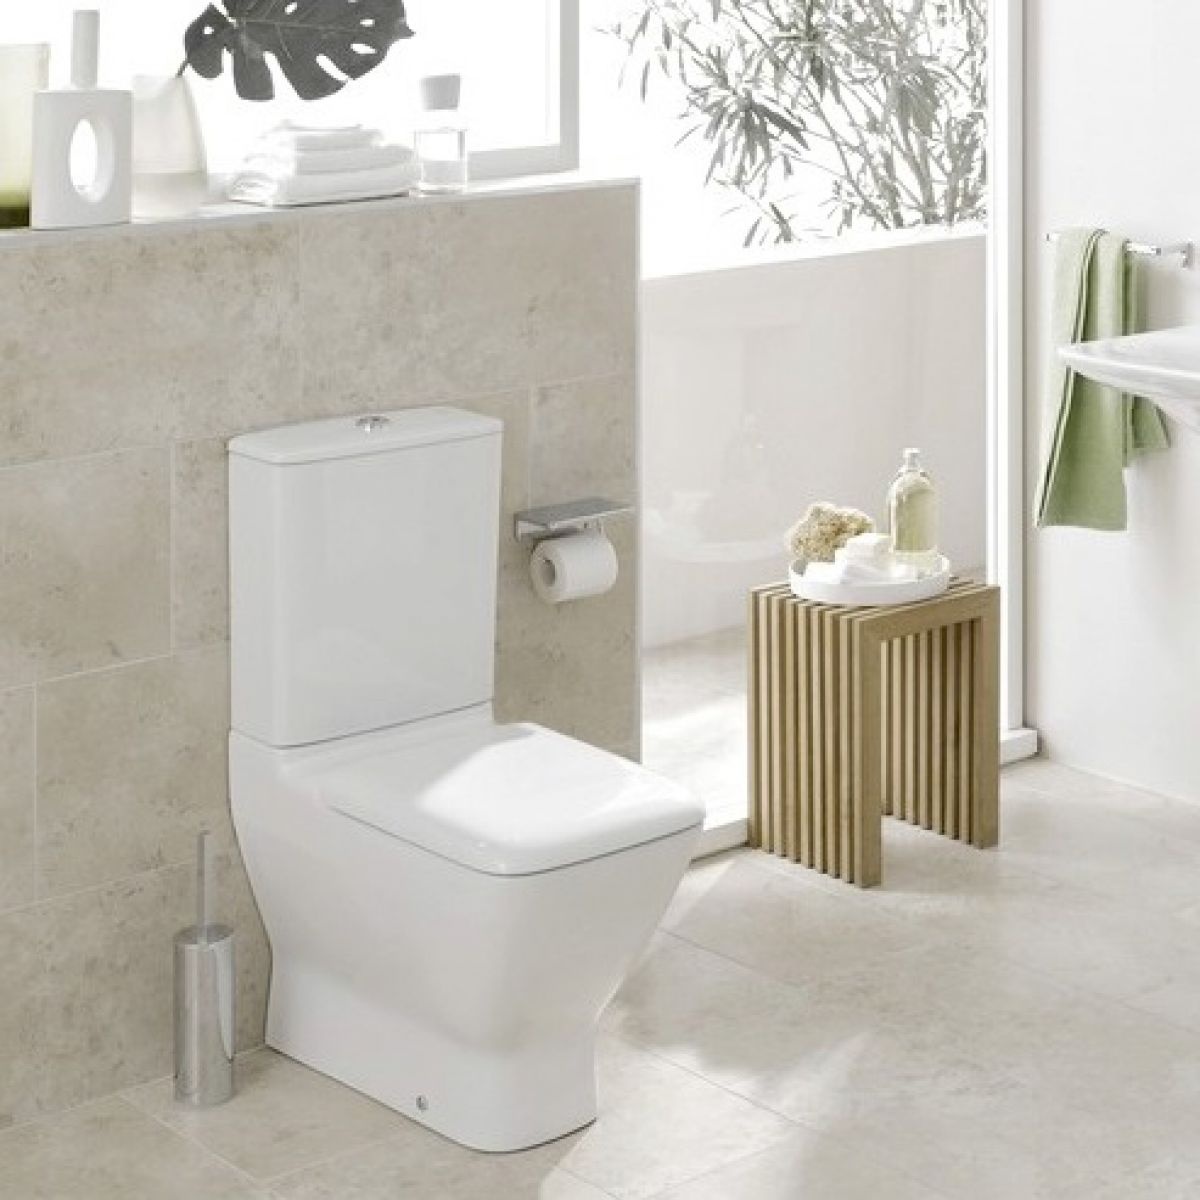 laufen palace close coupled toilet uk bathrooms. Black Bedroom Furniture Sets. Home Design Ideas